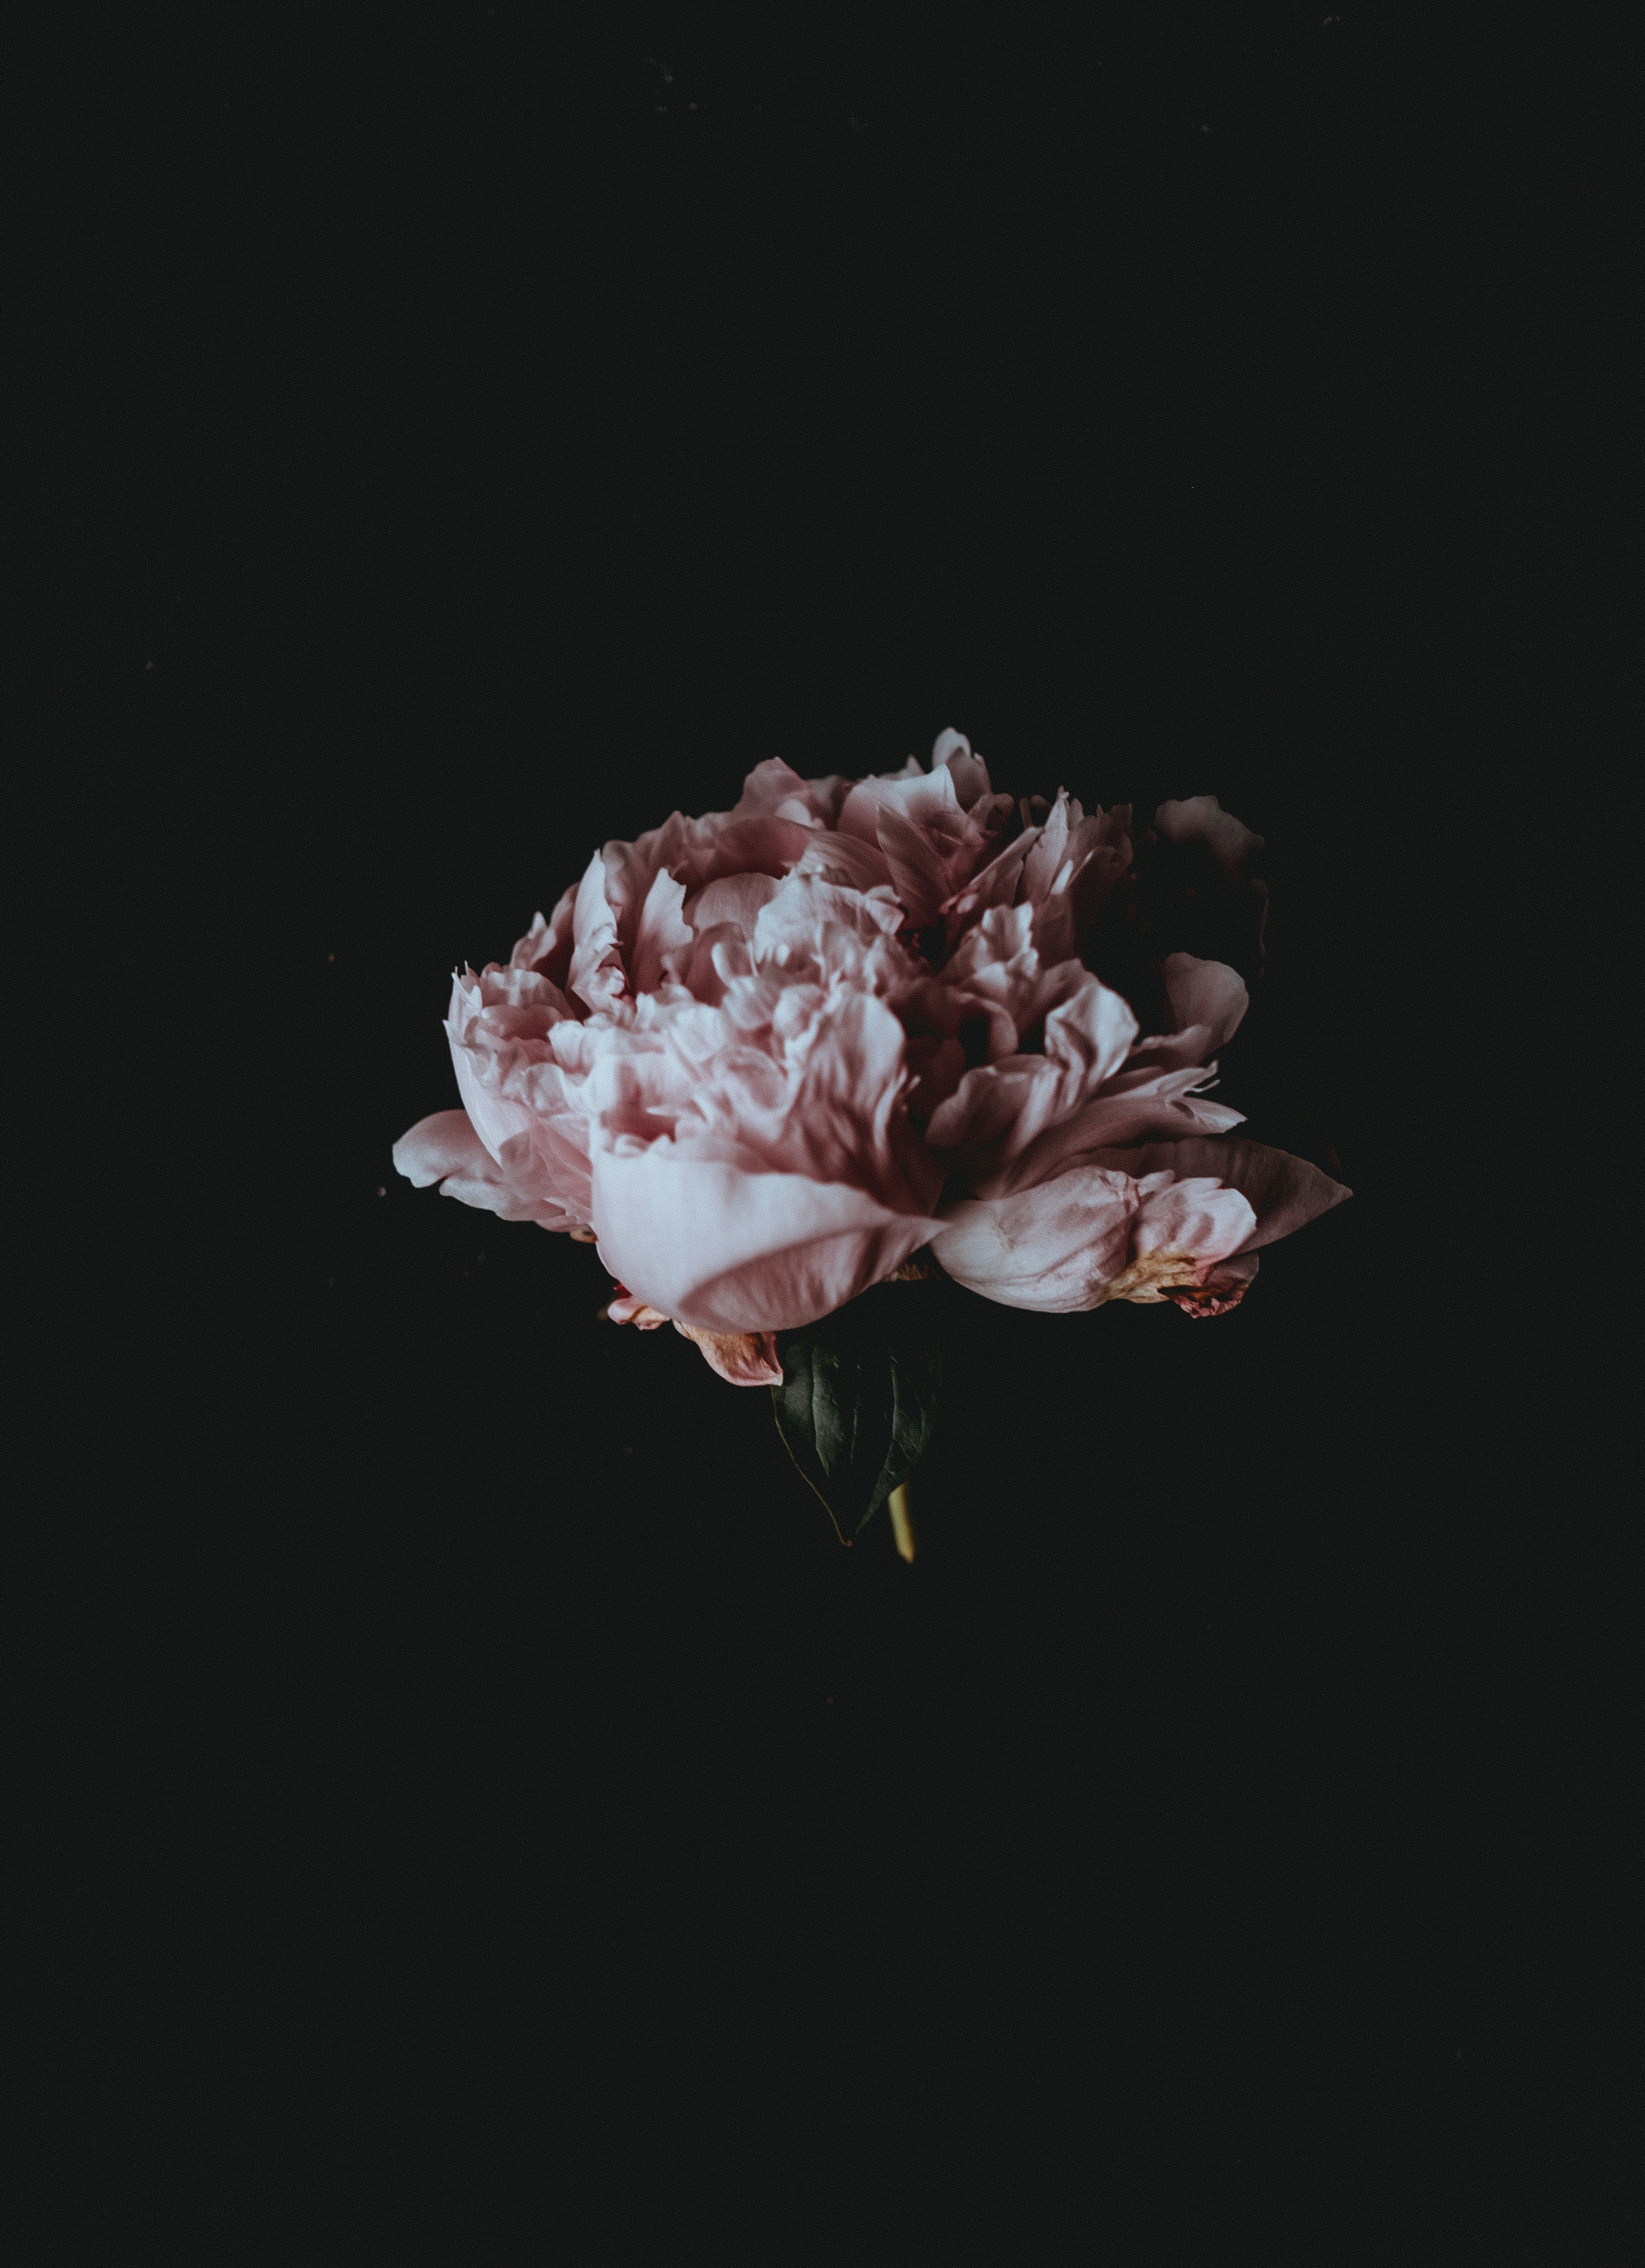 A Pale Pink Peony Flower Against A Black Background Flower Aesthetic Peony Wallpaper Dark Flowers